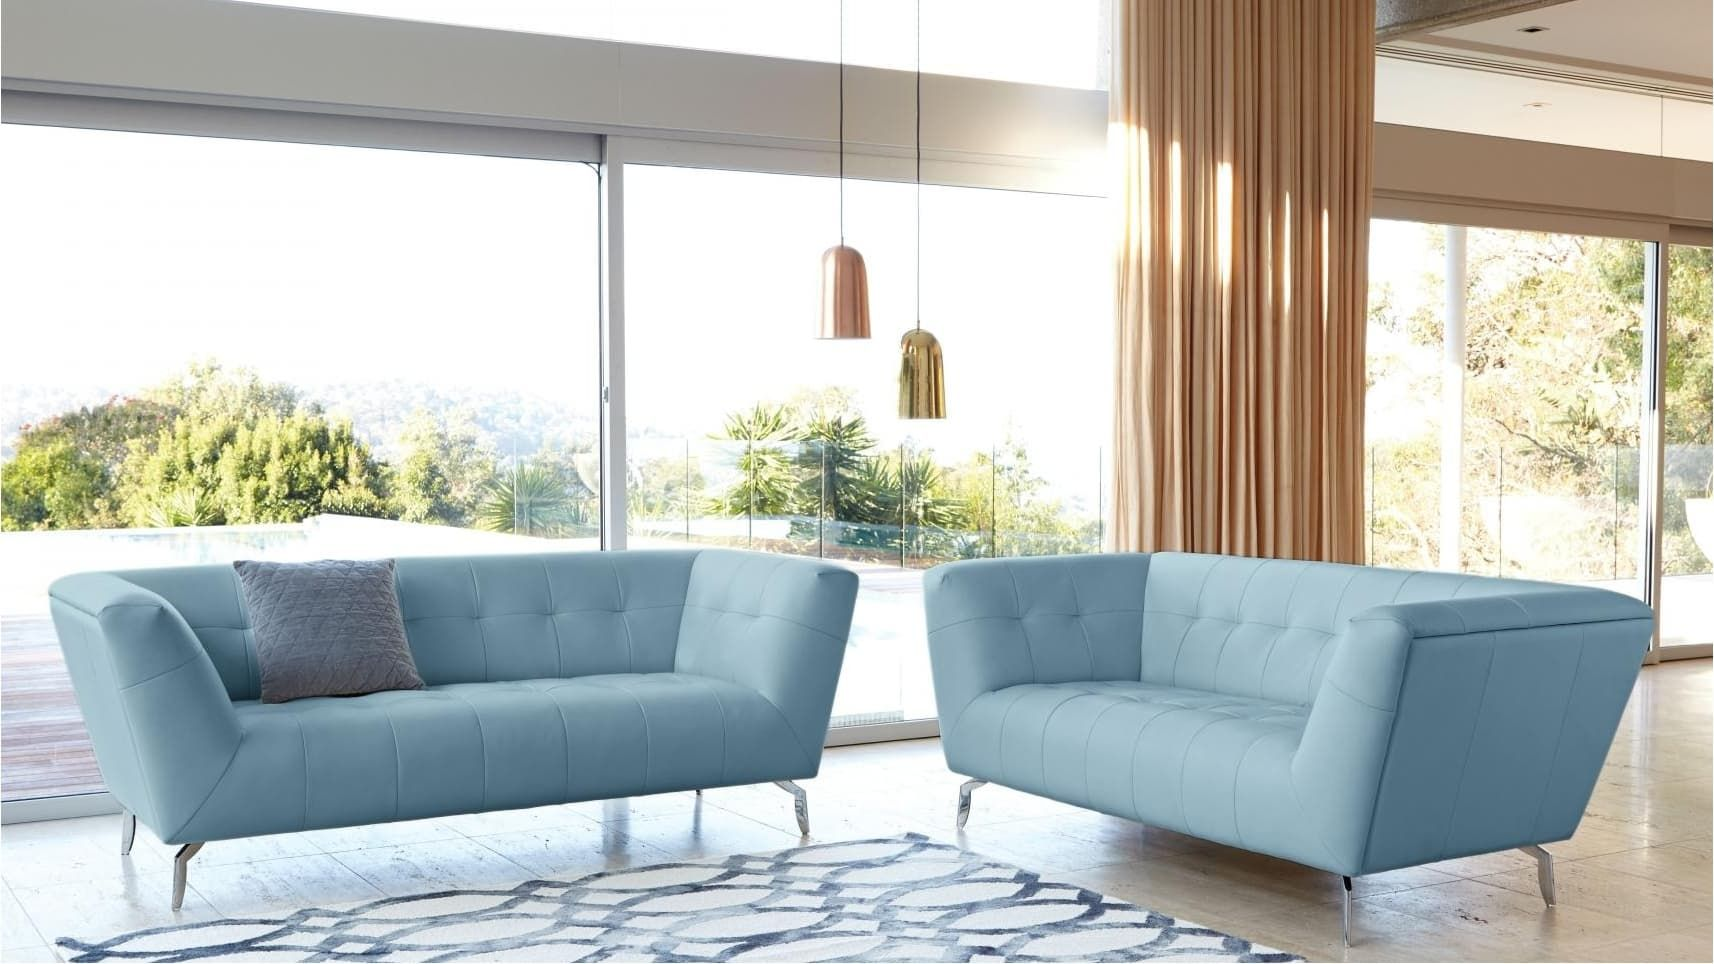 Sofa lounger pictures to pin on pinterest - Home Furniture Lounges Leather Lounges Contempo Leather Sofa